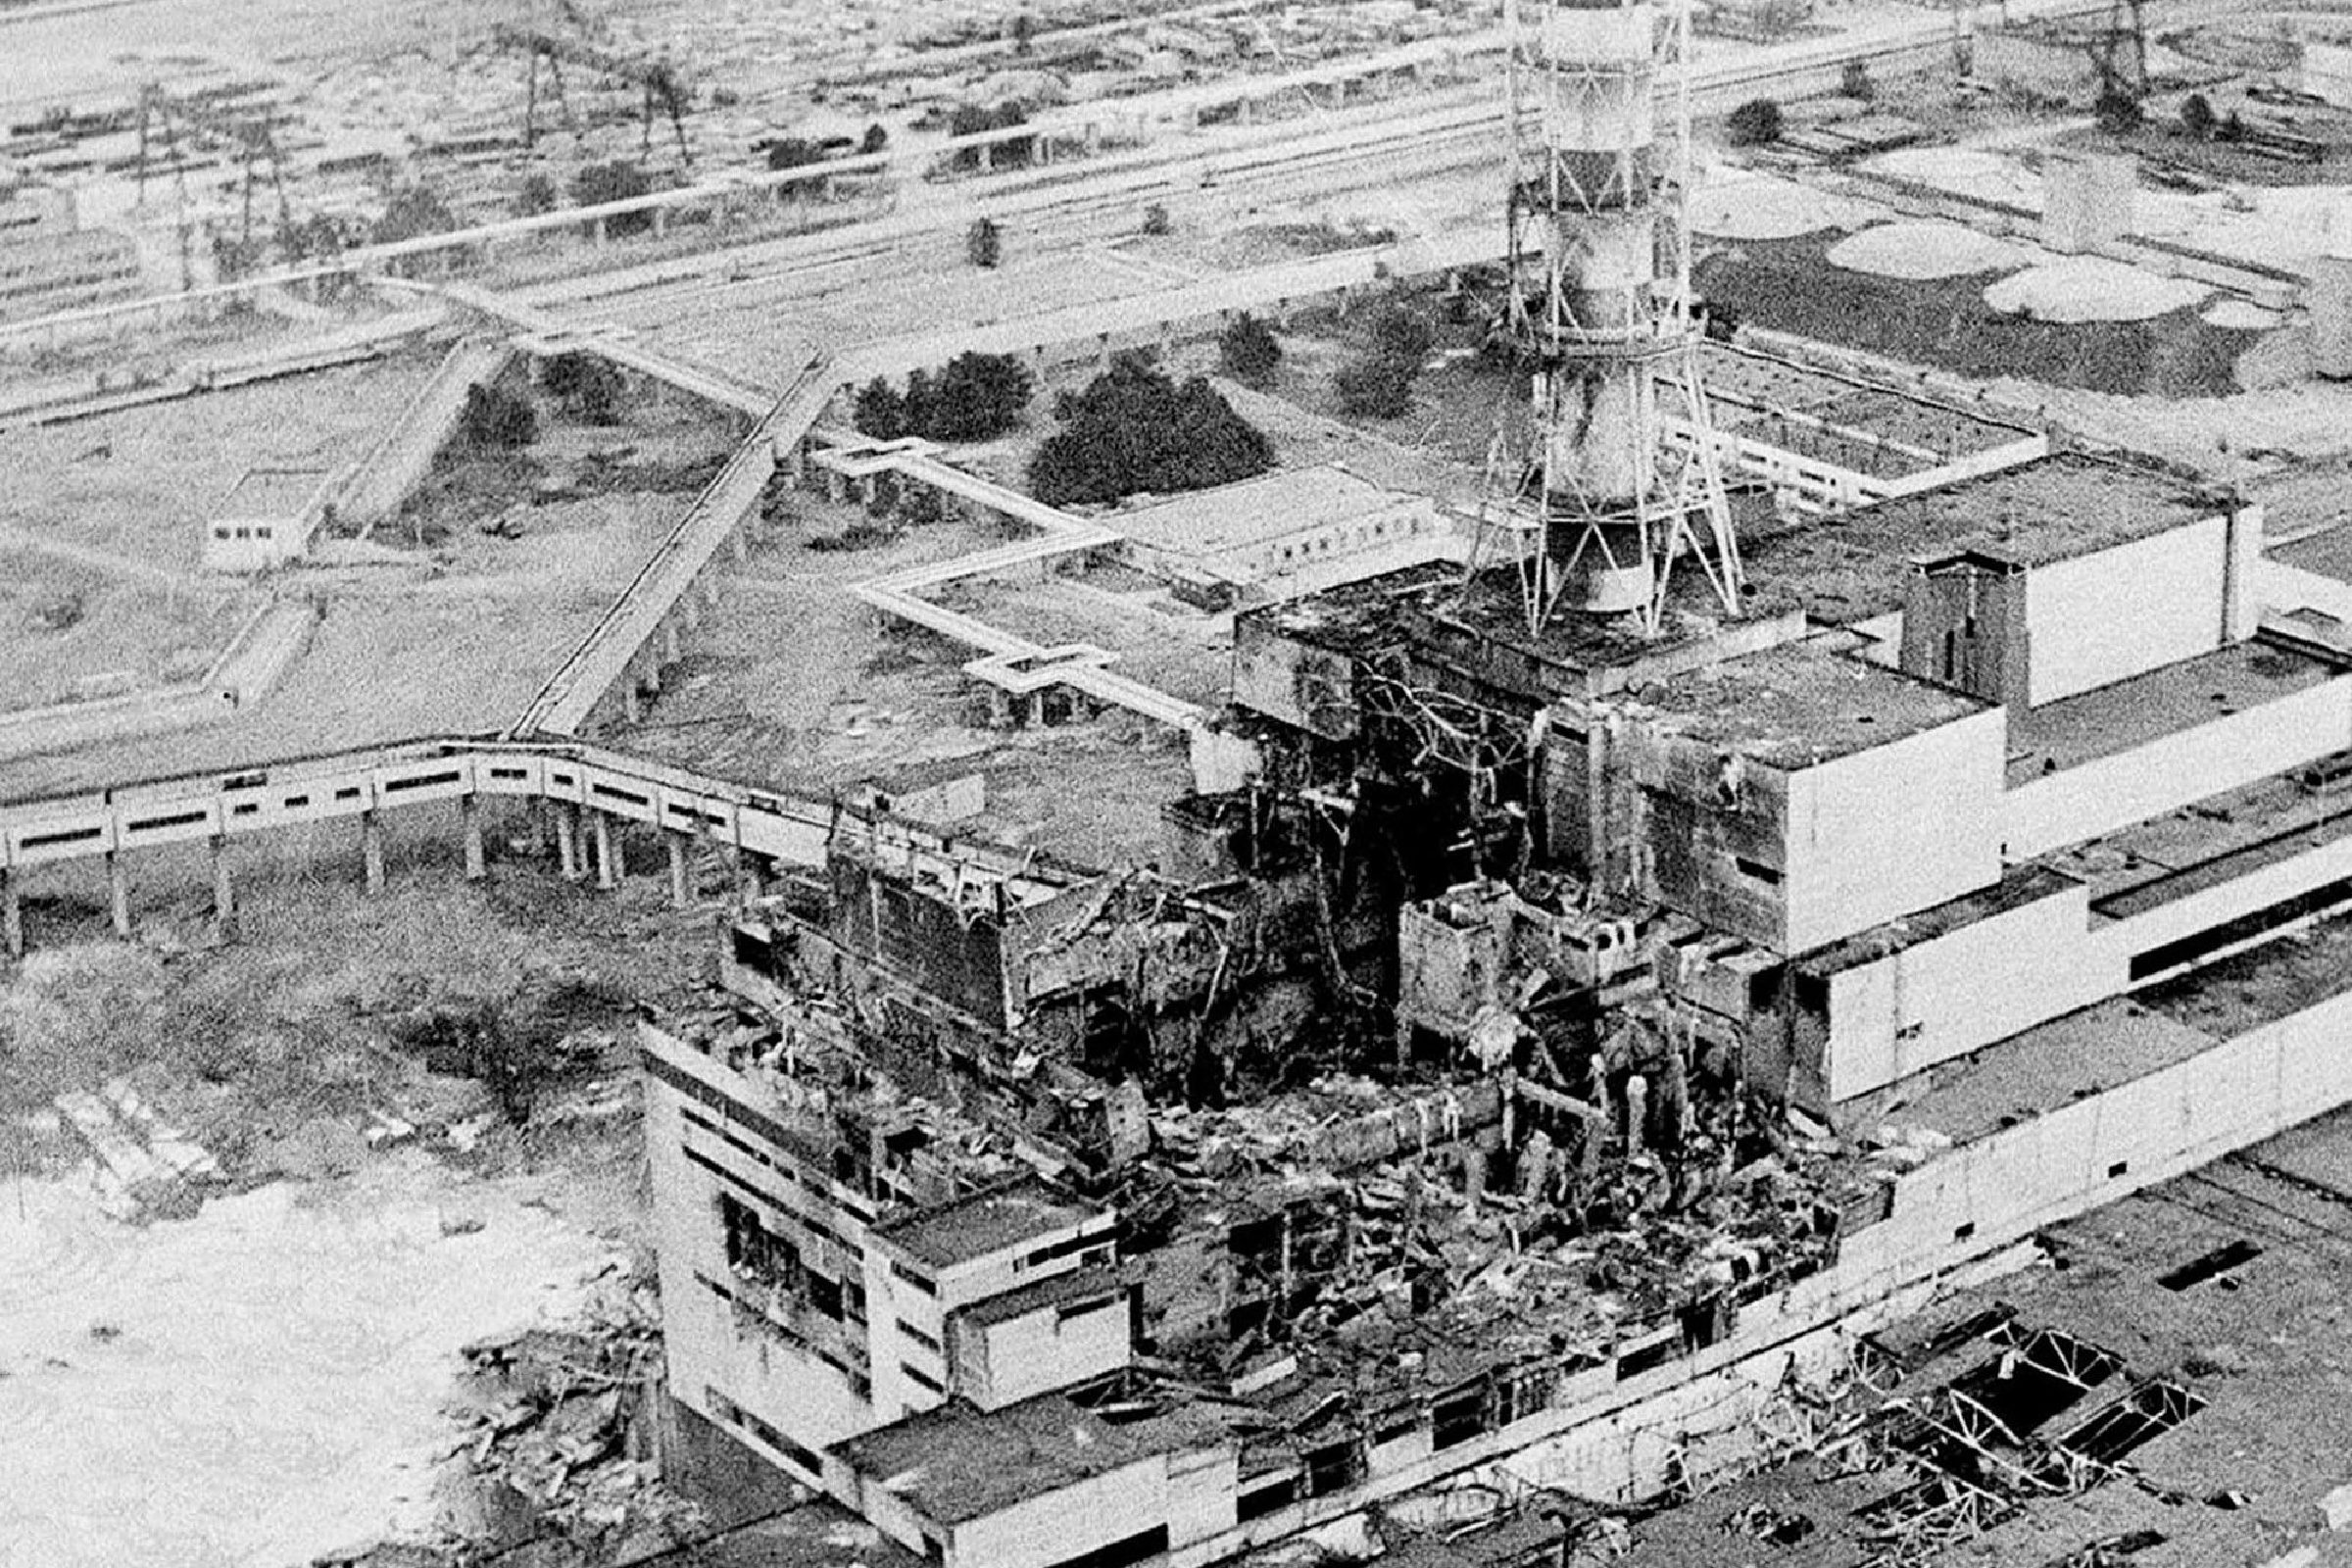 The Chernobyl nuclear power plant, the site of the world's worst nuclear accident, as made two to three days after the explosion in Chernobyl, Ukraine. Japan raised the crisis level at its crippled nuclear plant, to a severity on par with the 1986 Chernobyl disaster, citing high overall radiation leaks that have contaminated the air, tap water, vegetables and seawater. Japanese nuclear regulators said they raised the rating from 5 to 7 _ the highest level on an international scale of nuclear accidents overseen by the International Atomic Energy Agency _ after new assessments of radiation leaks from the Fukushima Dai-ichi plant since it was disabled by the March 11 tsunami